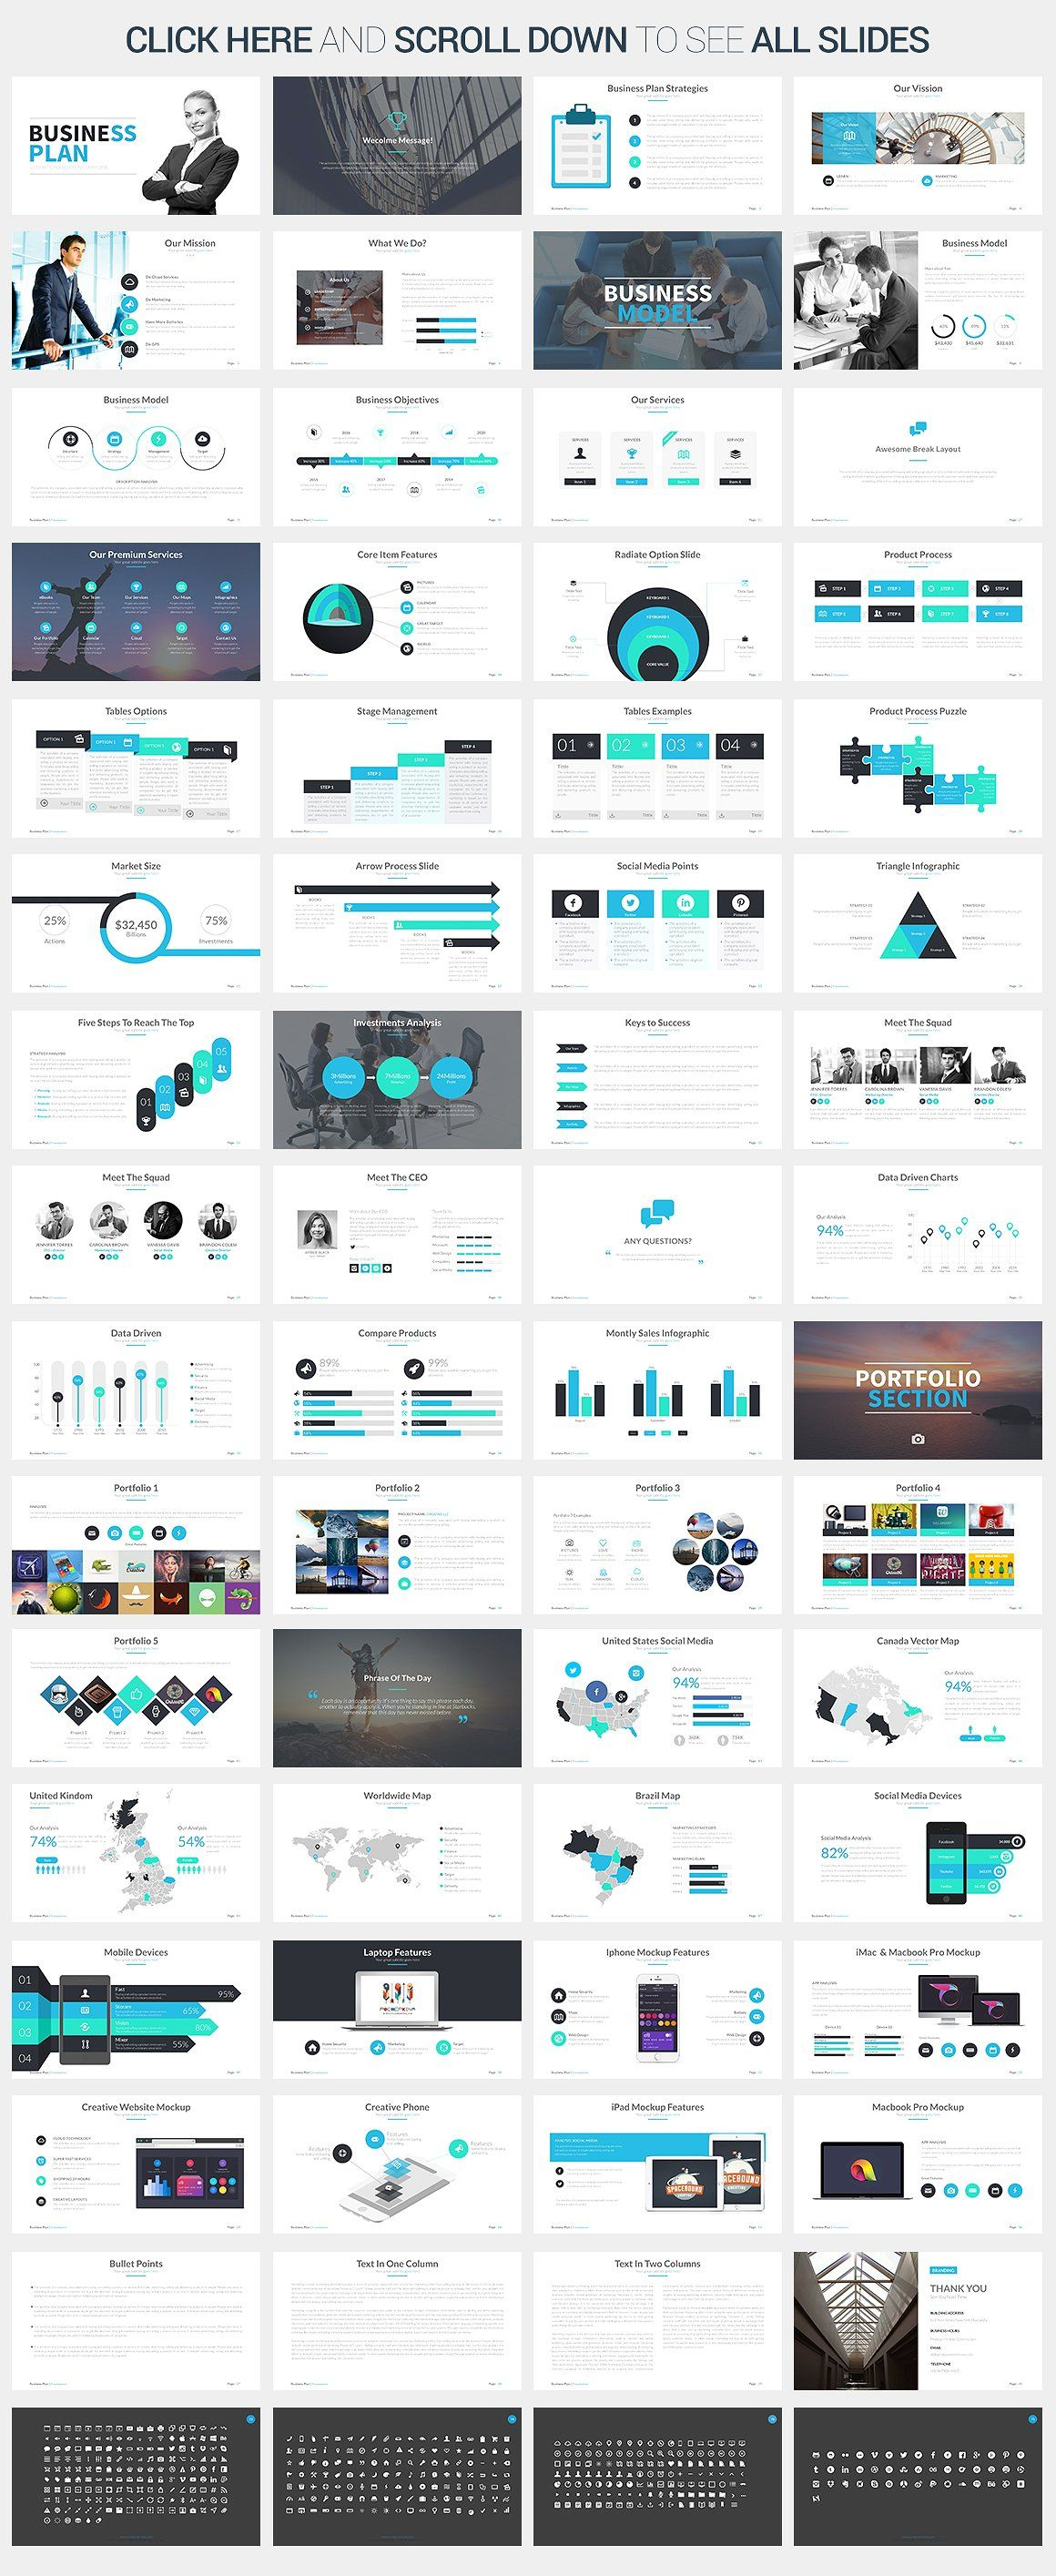 Business plan google slides template by slidepro on creativemarket business plan google slides template by slidepro on creativemarket cheaphphosting